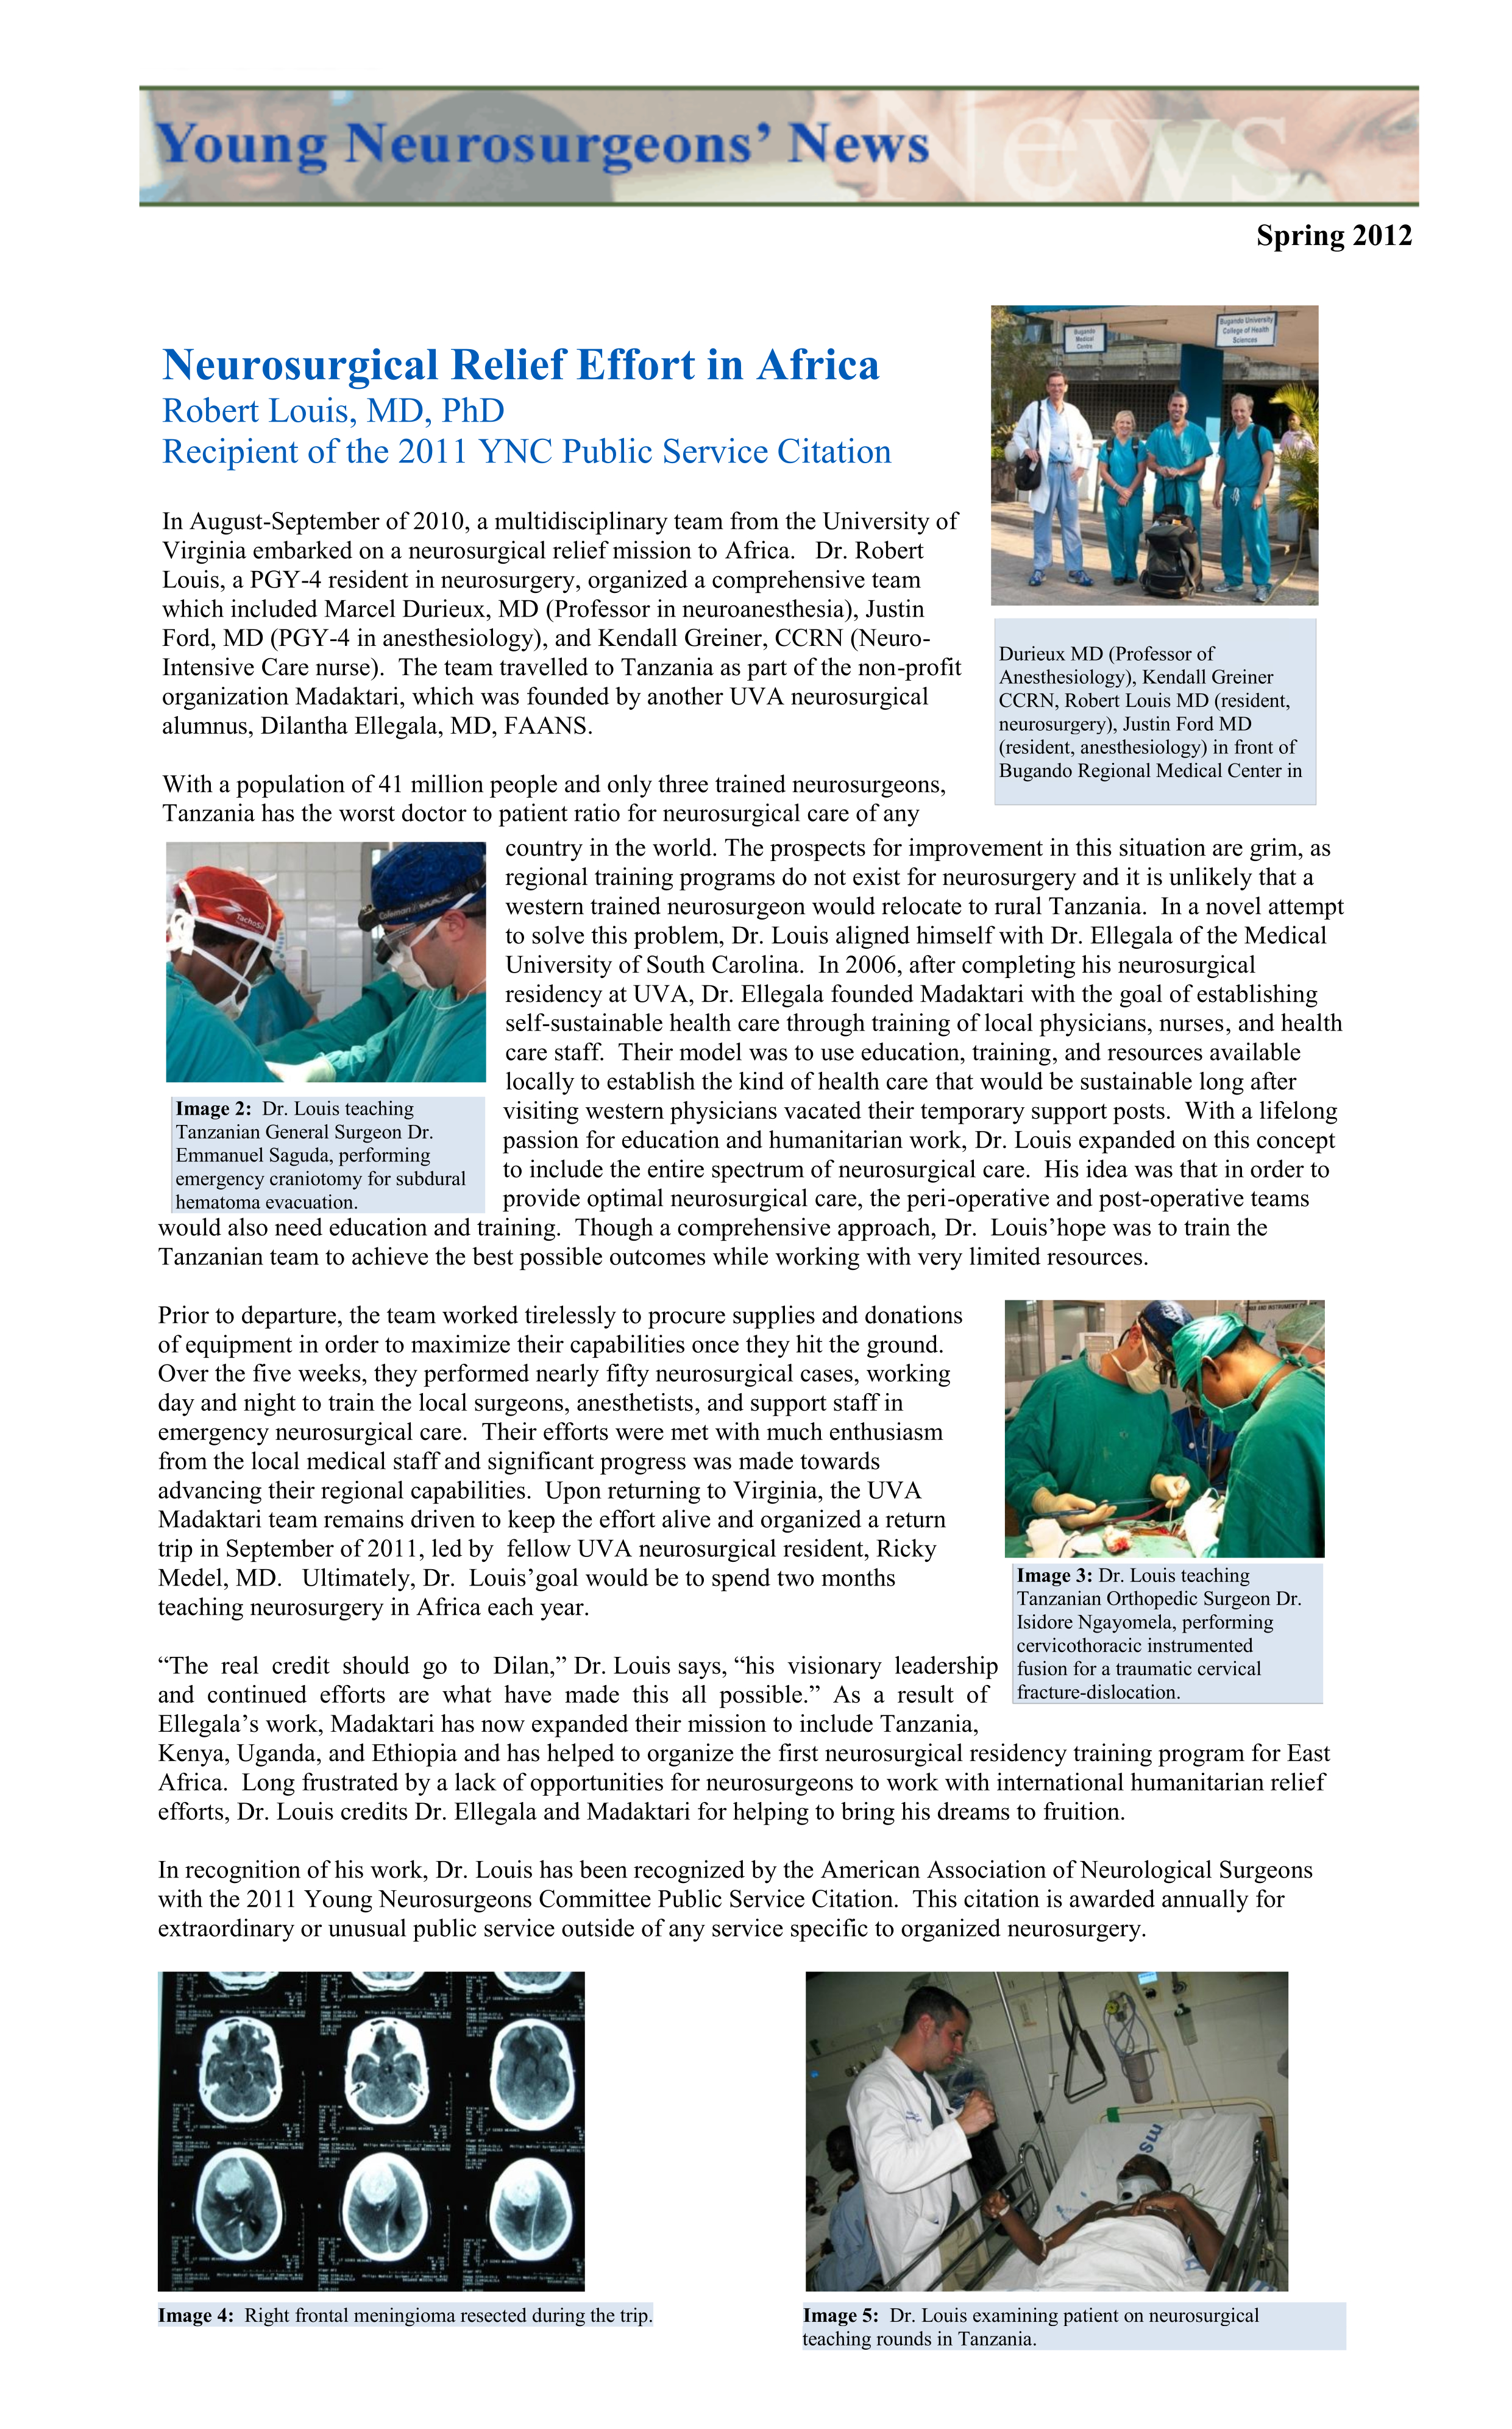 Neurosurgical relief effort in Africa